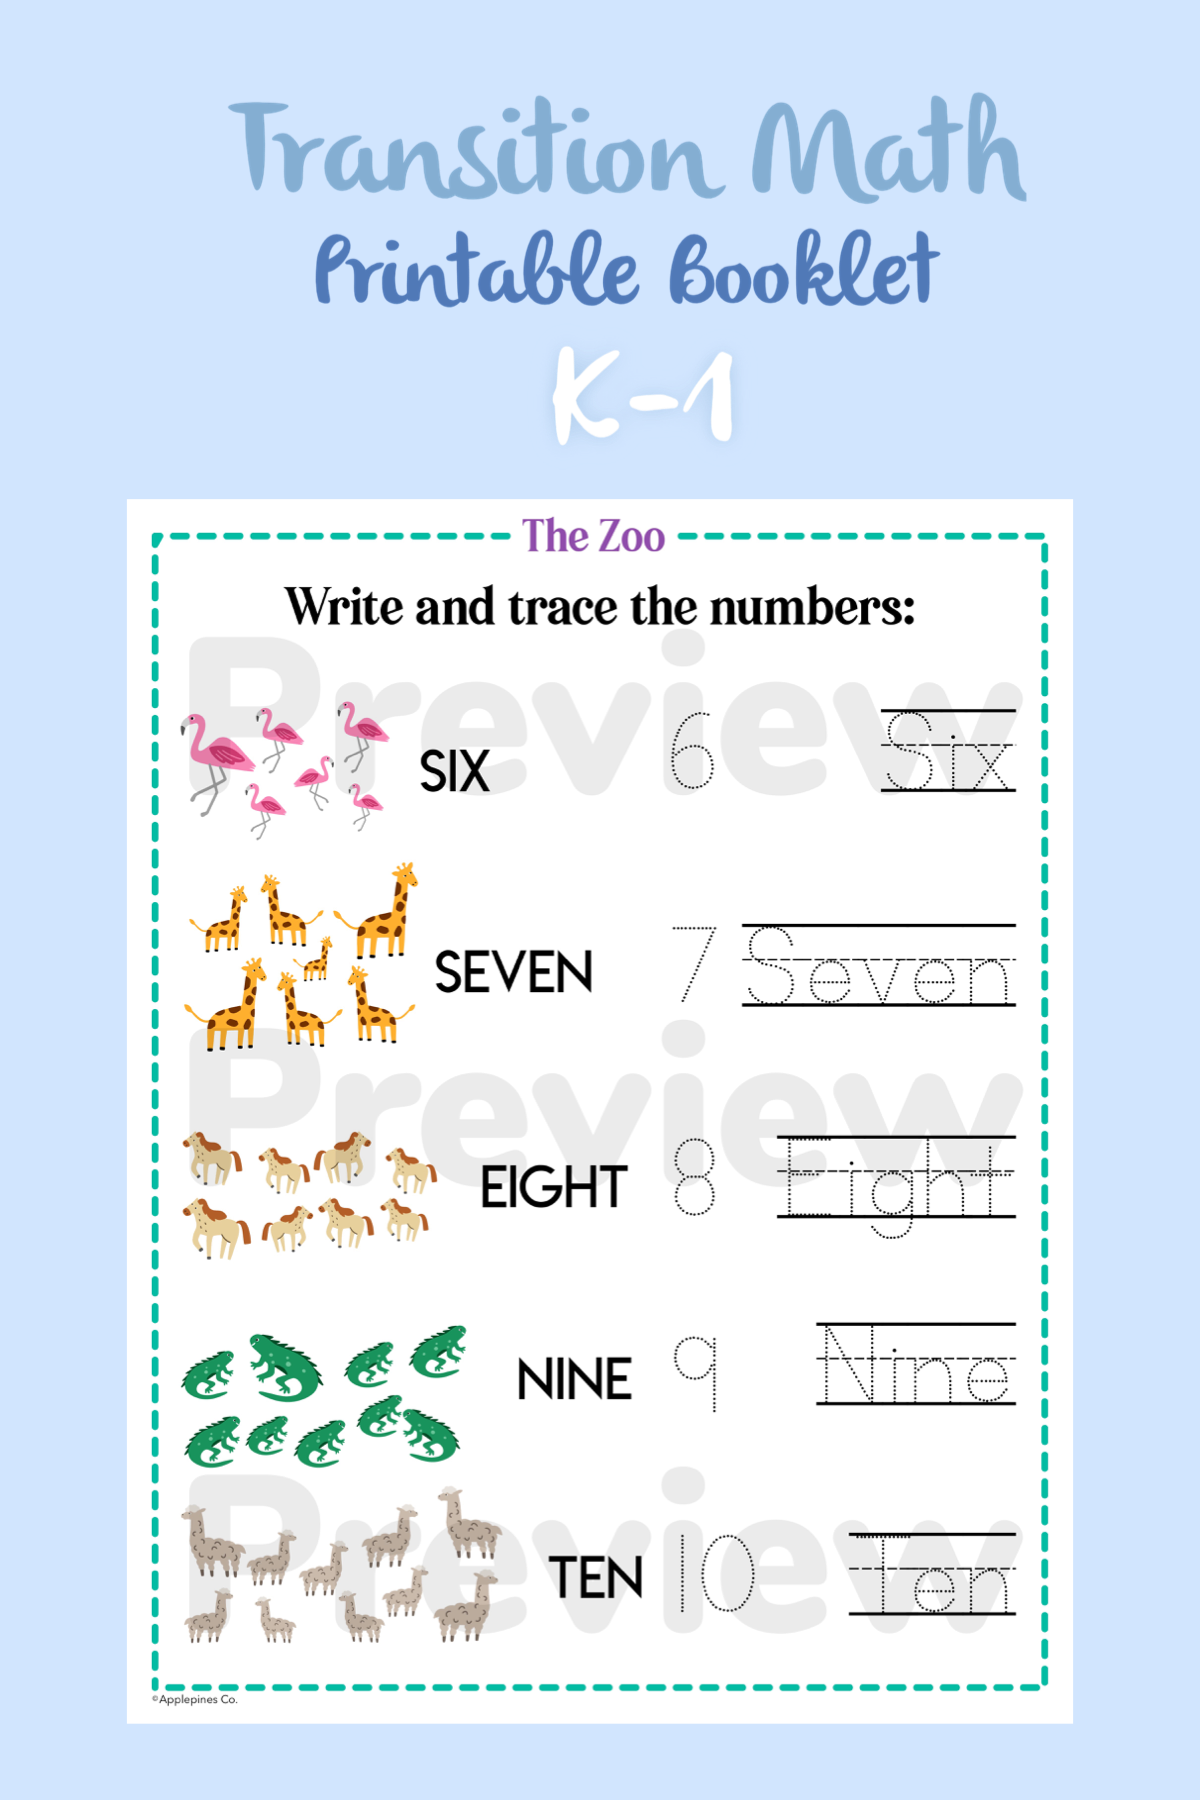 Do You Know The Zoo Transition Math Printable Worksheets For Etsy Math Printables Math Printable Worksheets [ 1800 x 1200 Pixel ]